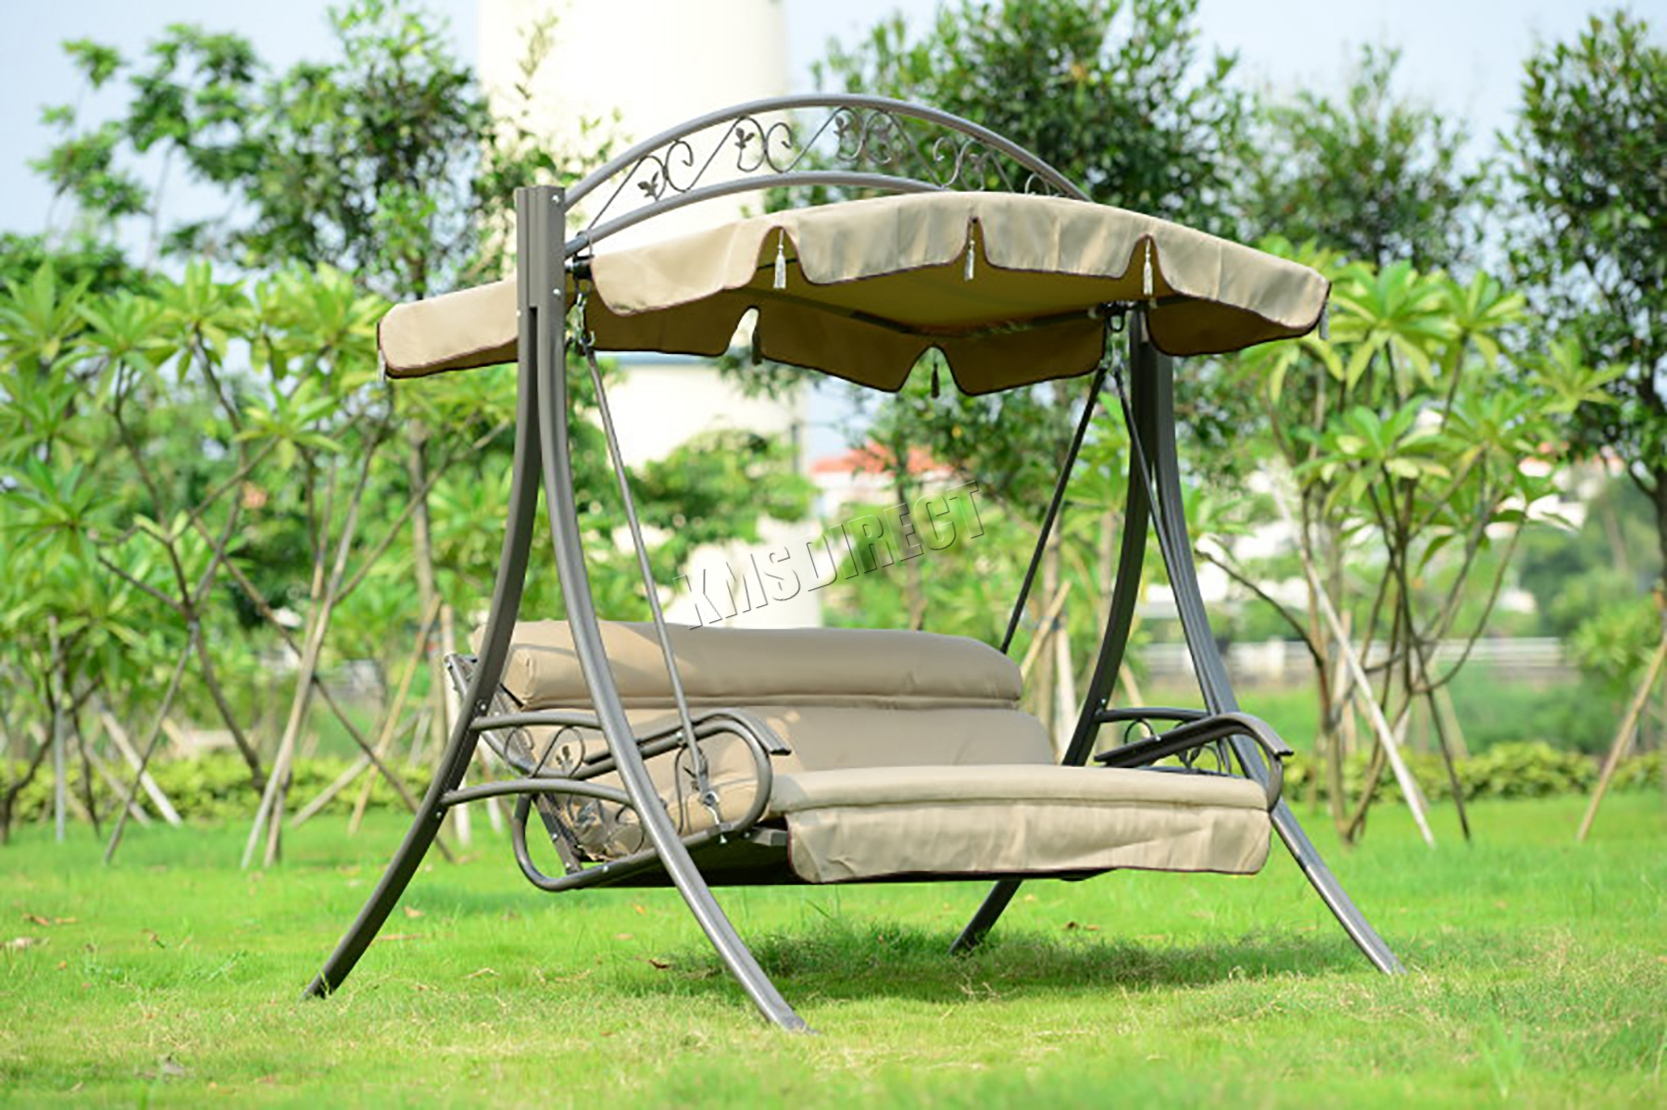 Patio Swing Chair Foxhunter Garden Metal Swing Hammock 3 Seater Chair Bench